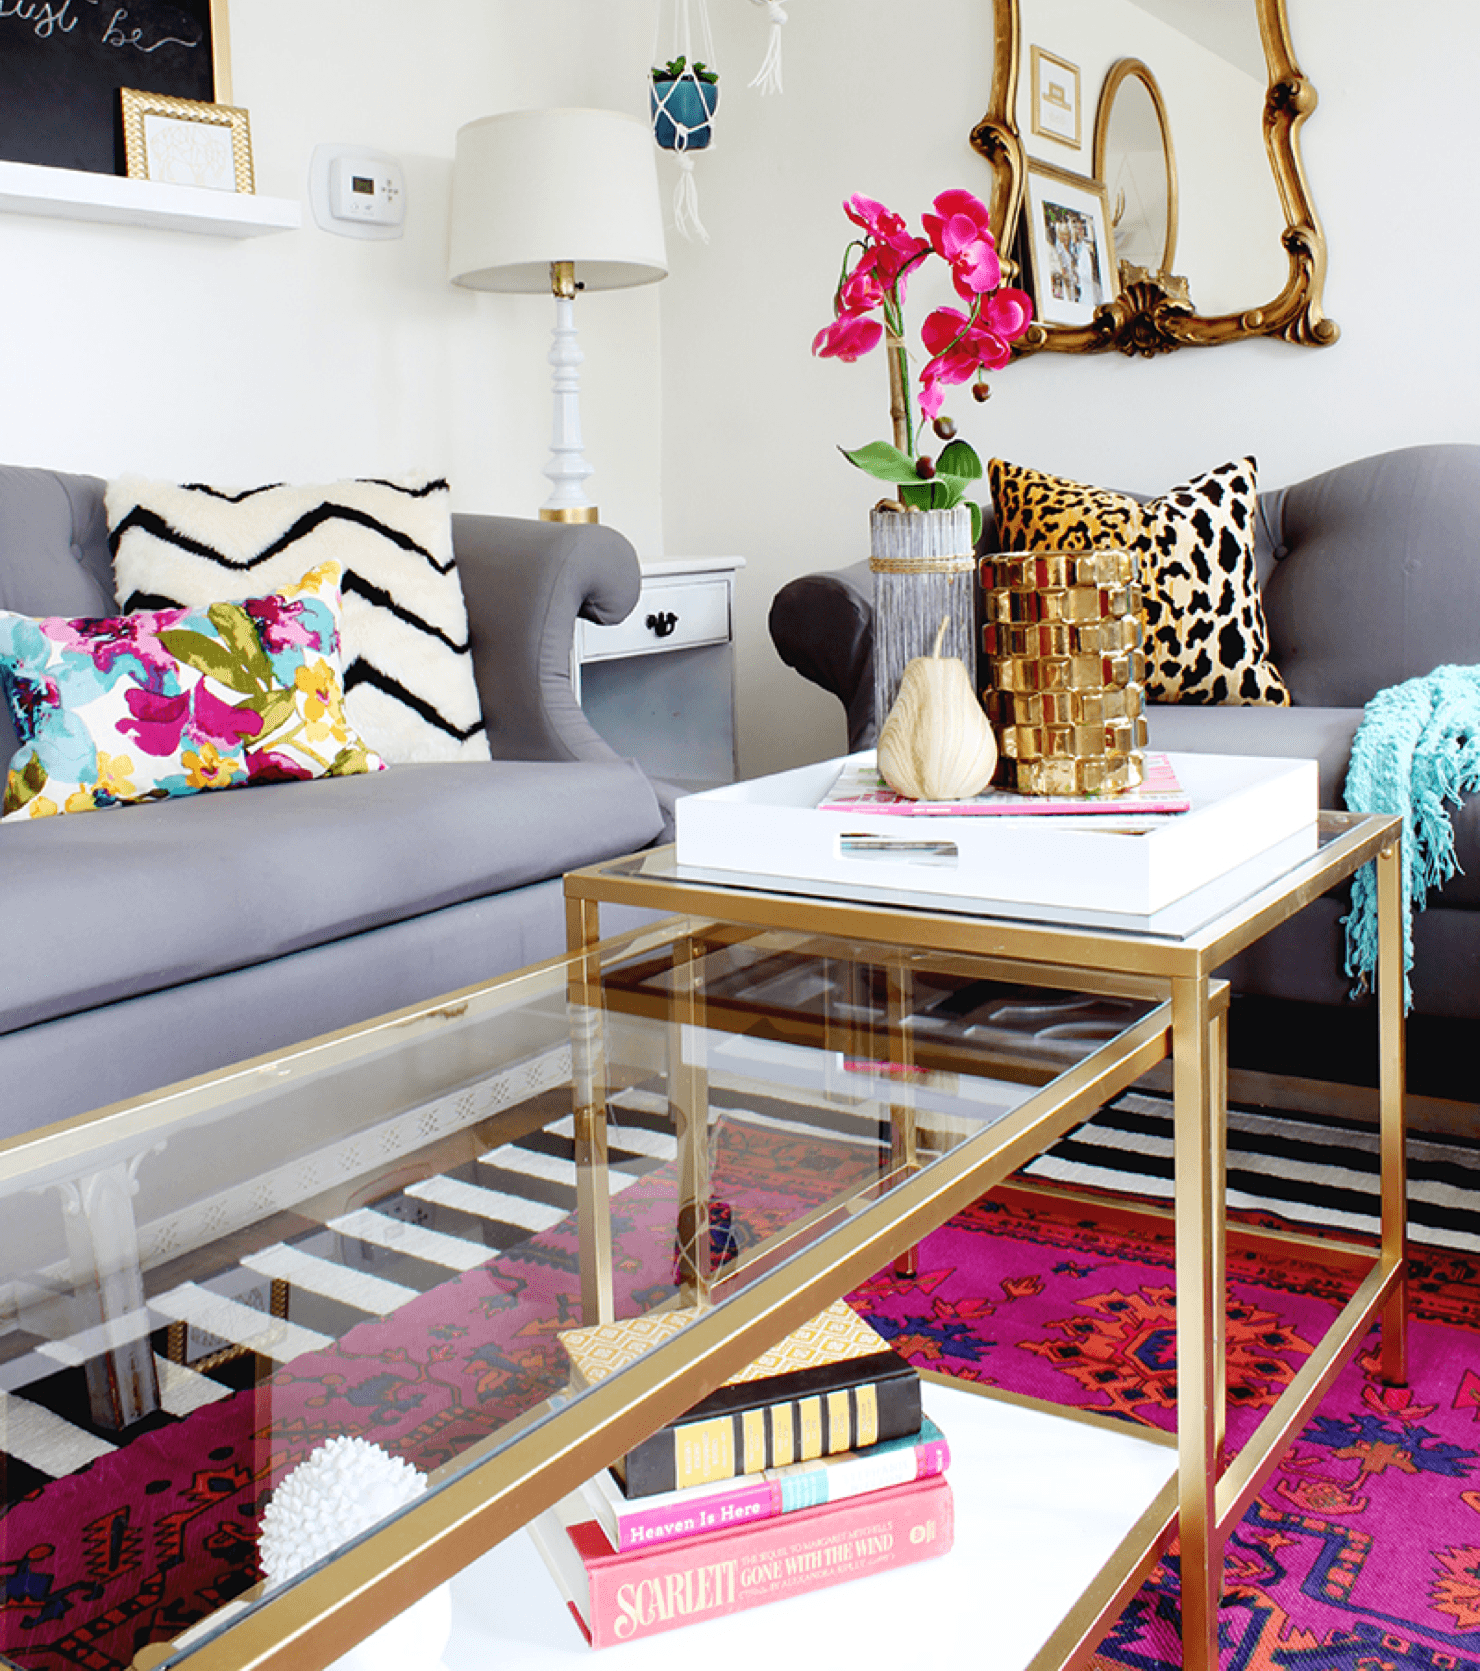 16 DIY Projects to Revamp Old Furniture Coffee Table image